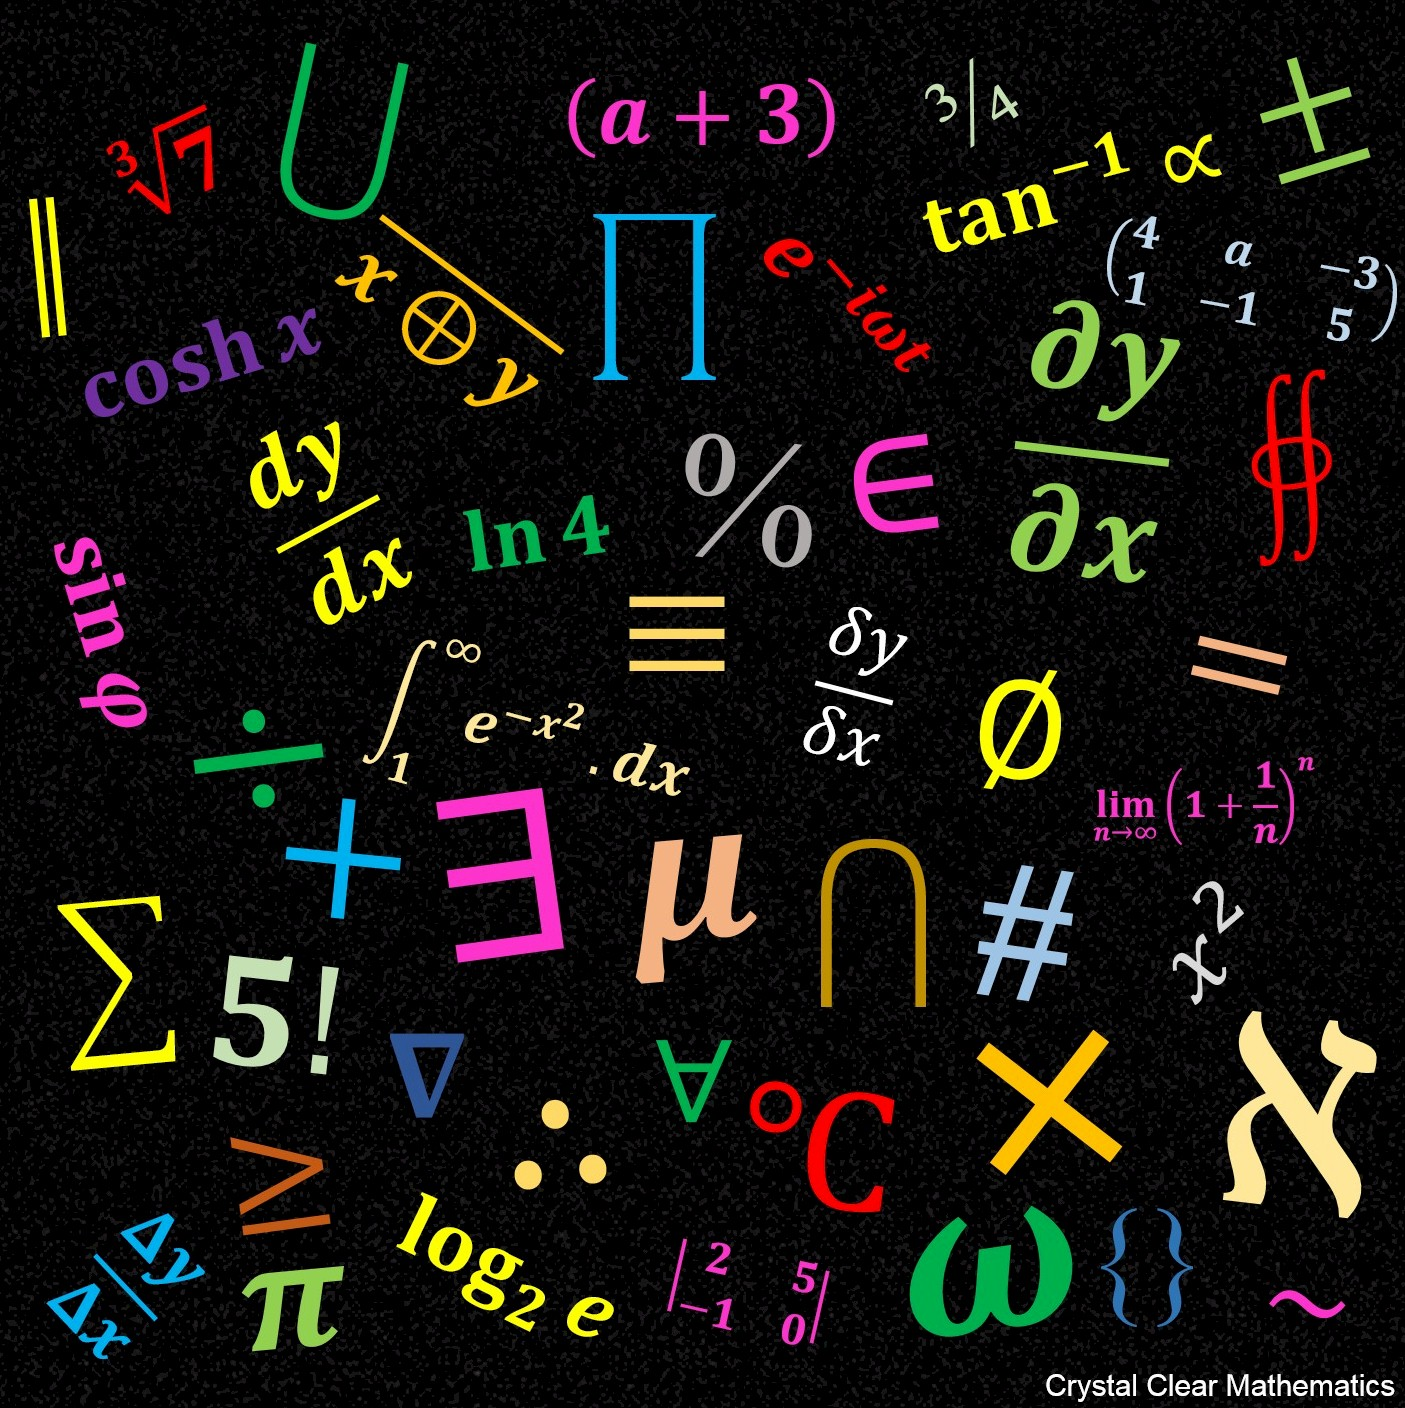 Mathematical Symbols Crystal Clear Mathematics